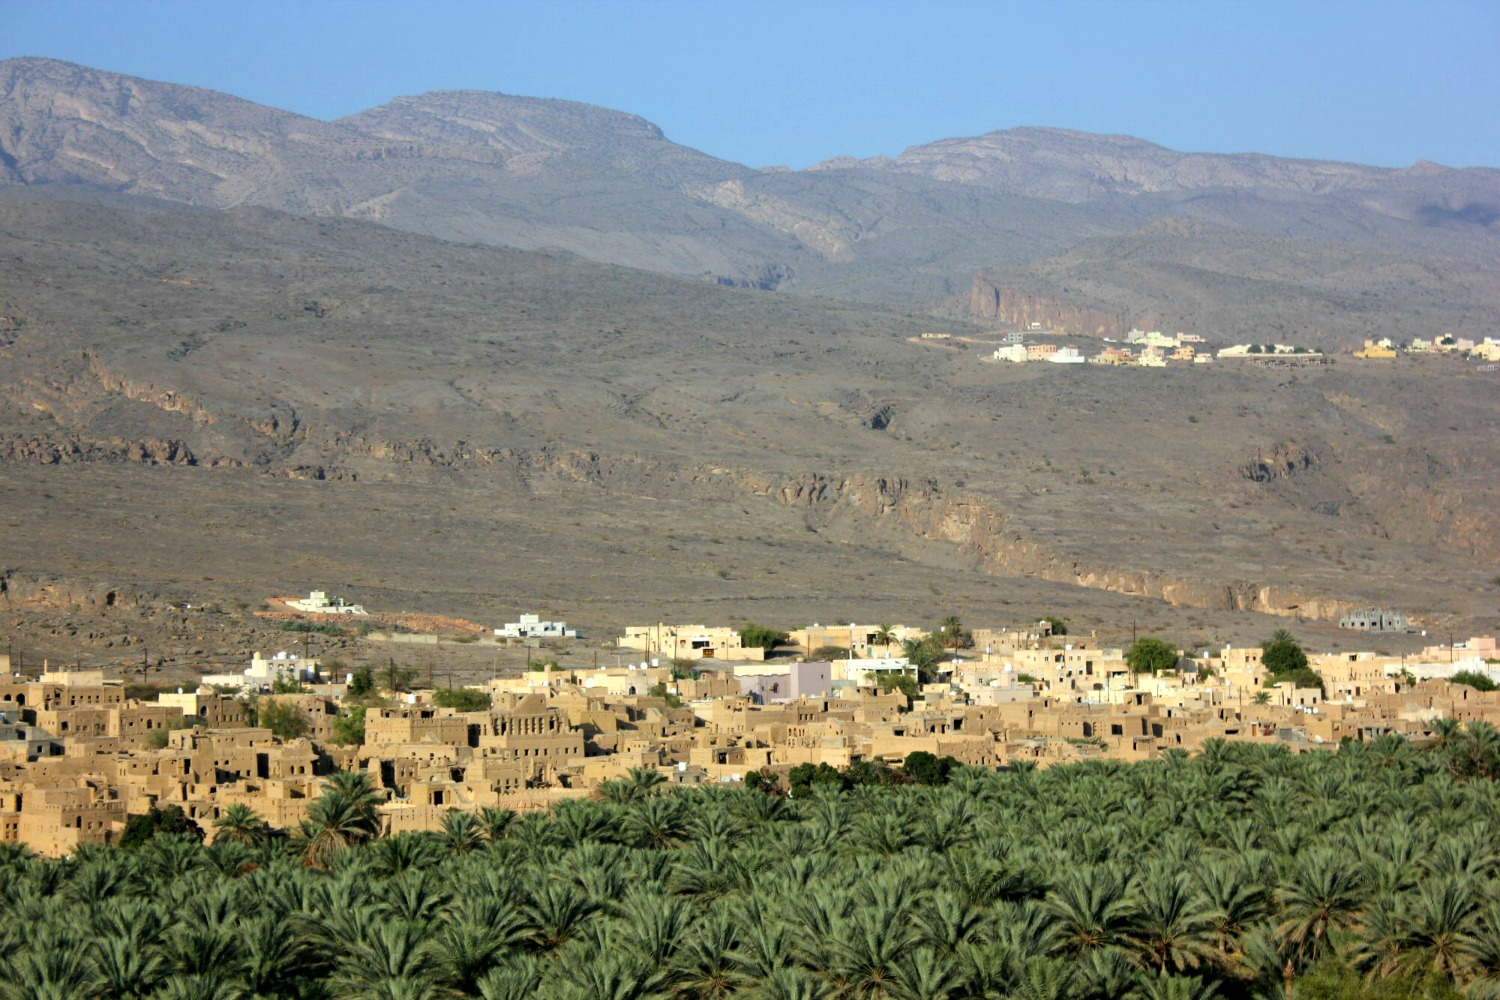 A view of the lush green date palms and a village in the wadi in the shadow of the Hajar Mountains in Oman - my nine reasons to visit Oman with kids